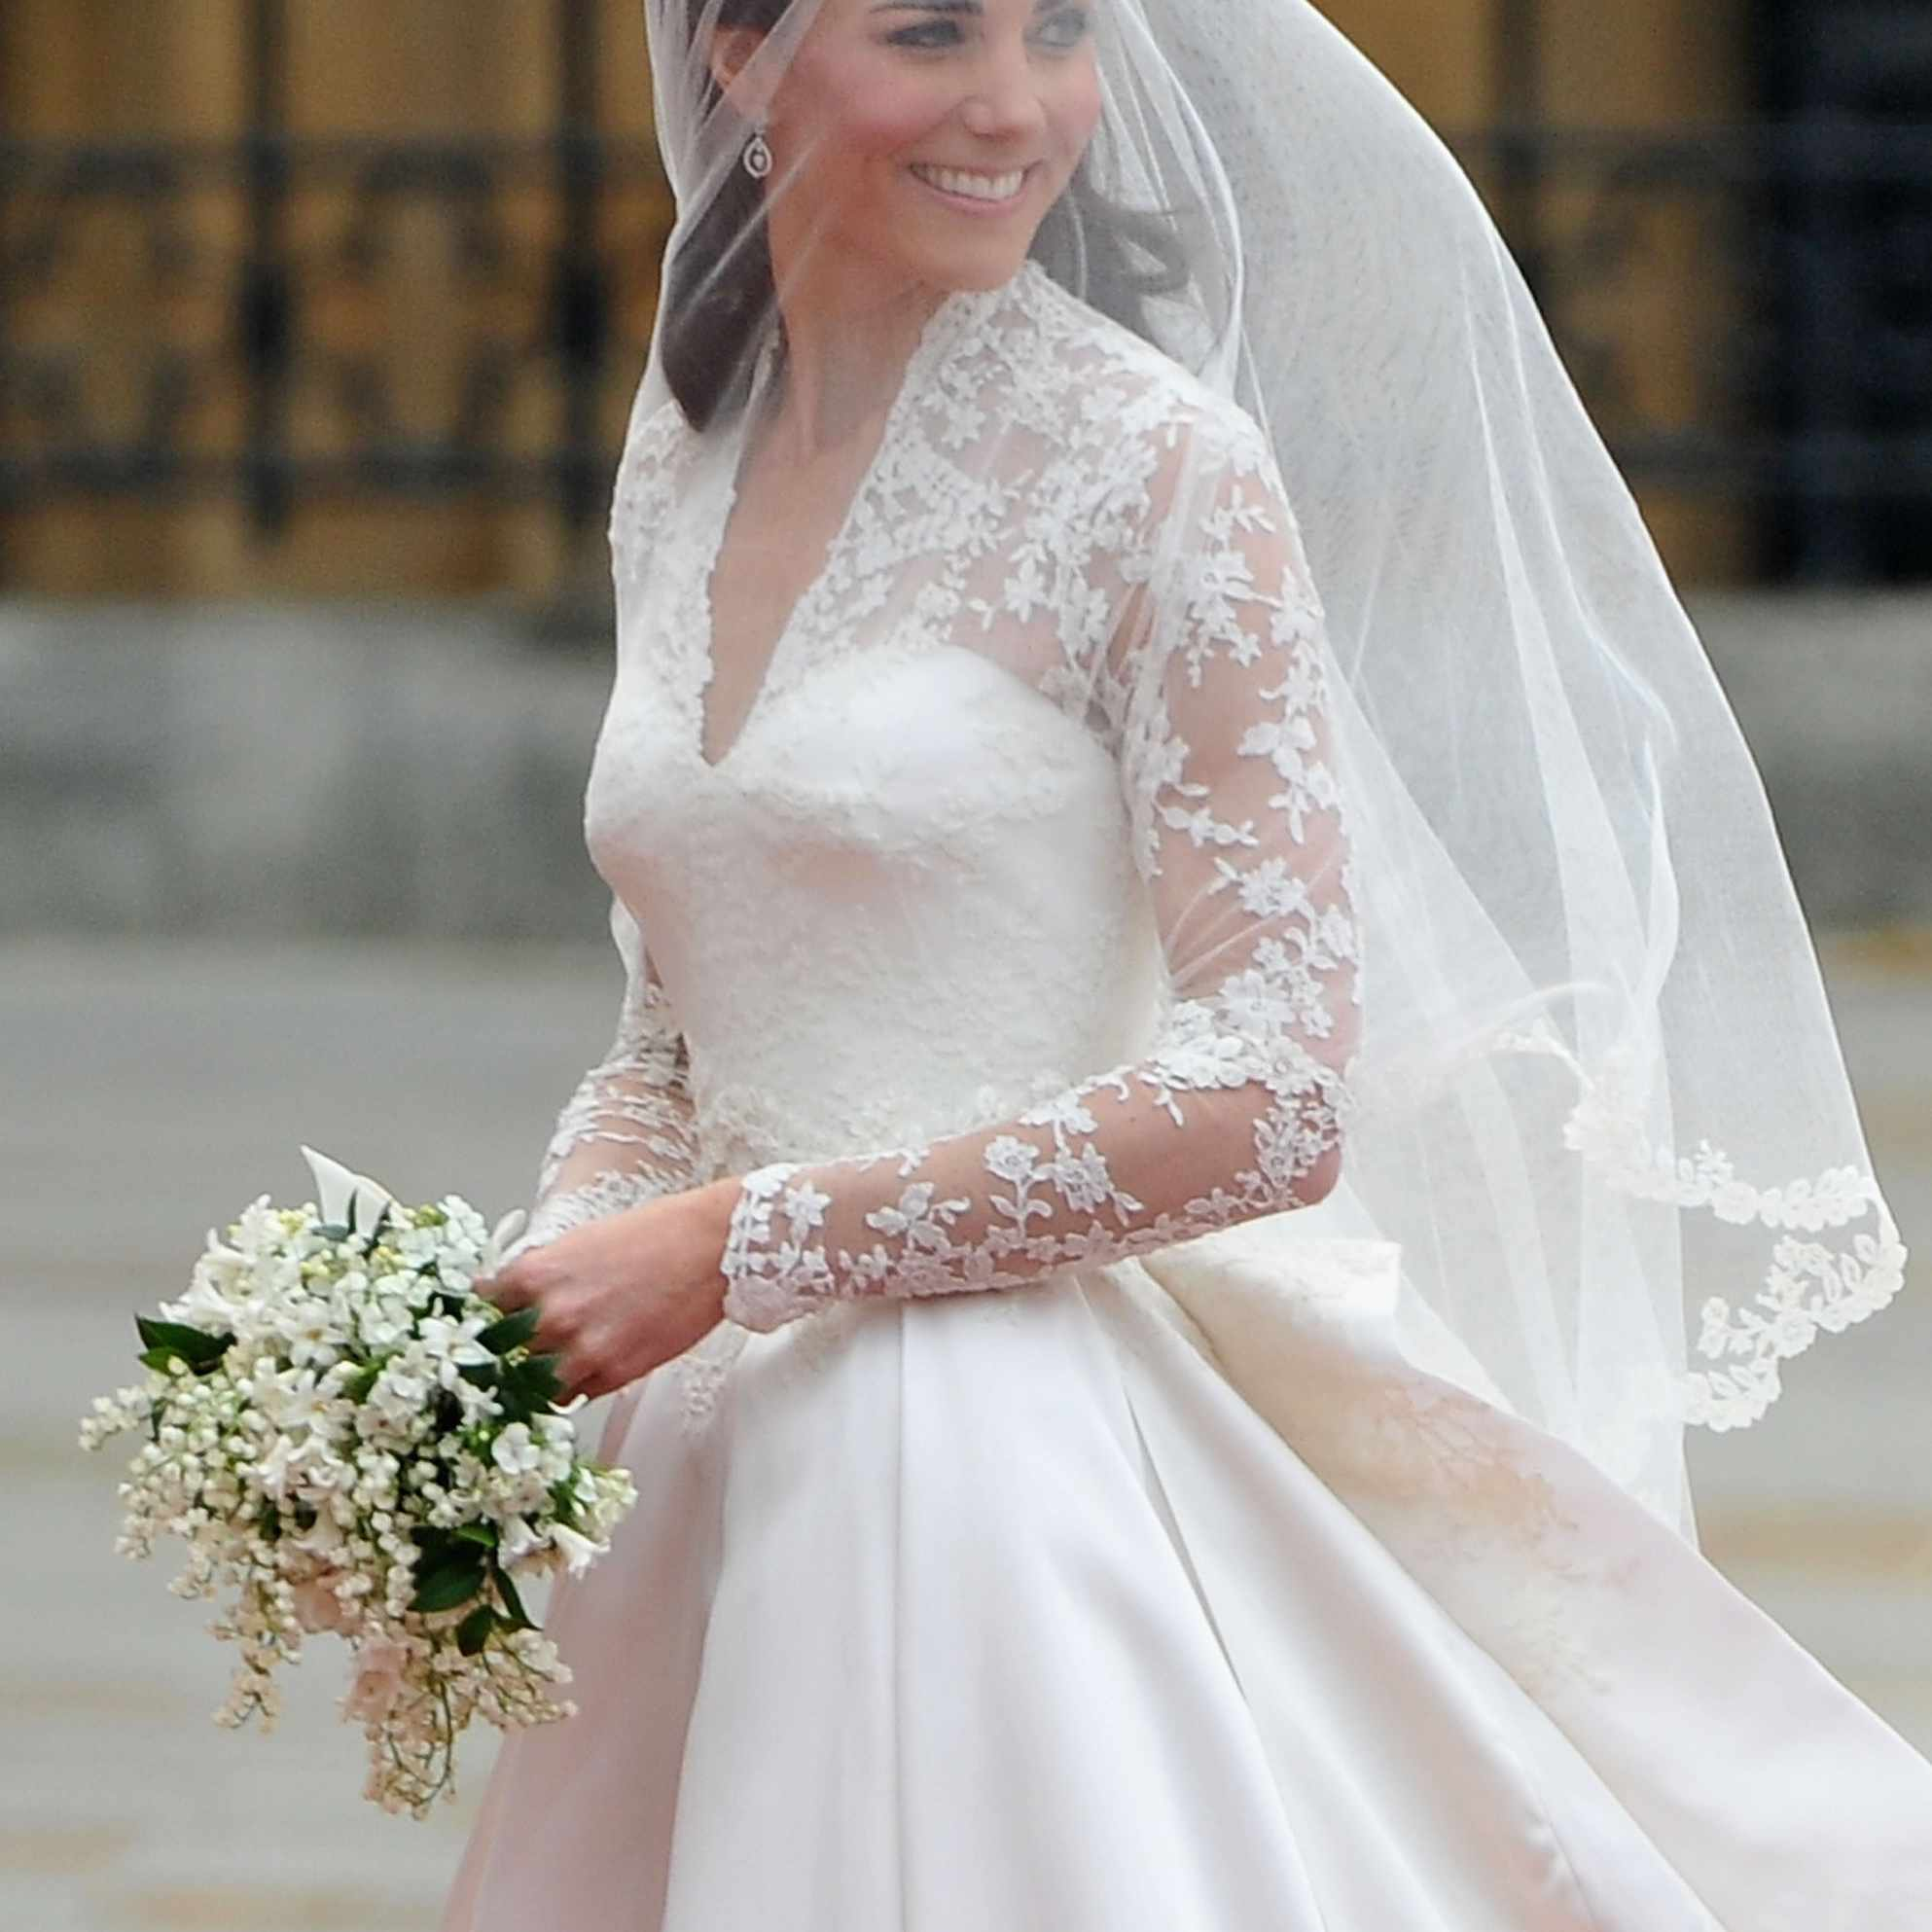 10 Iconic Celebrity Wedding Dresses